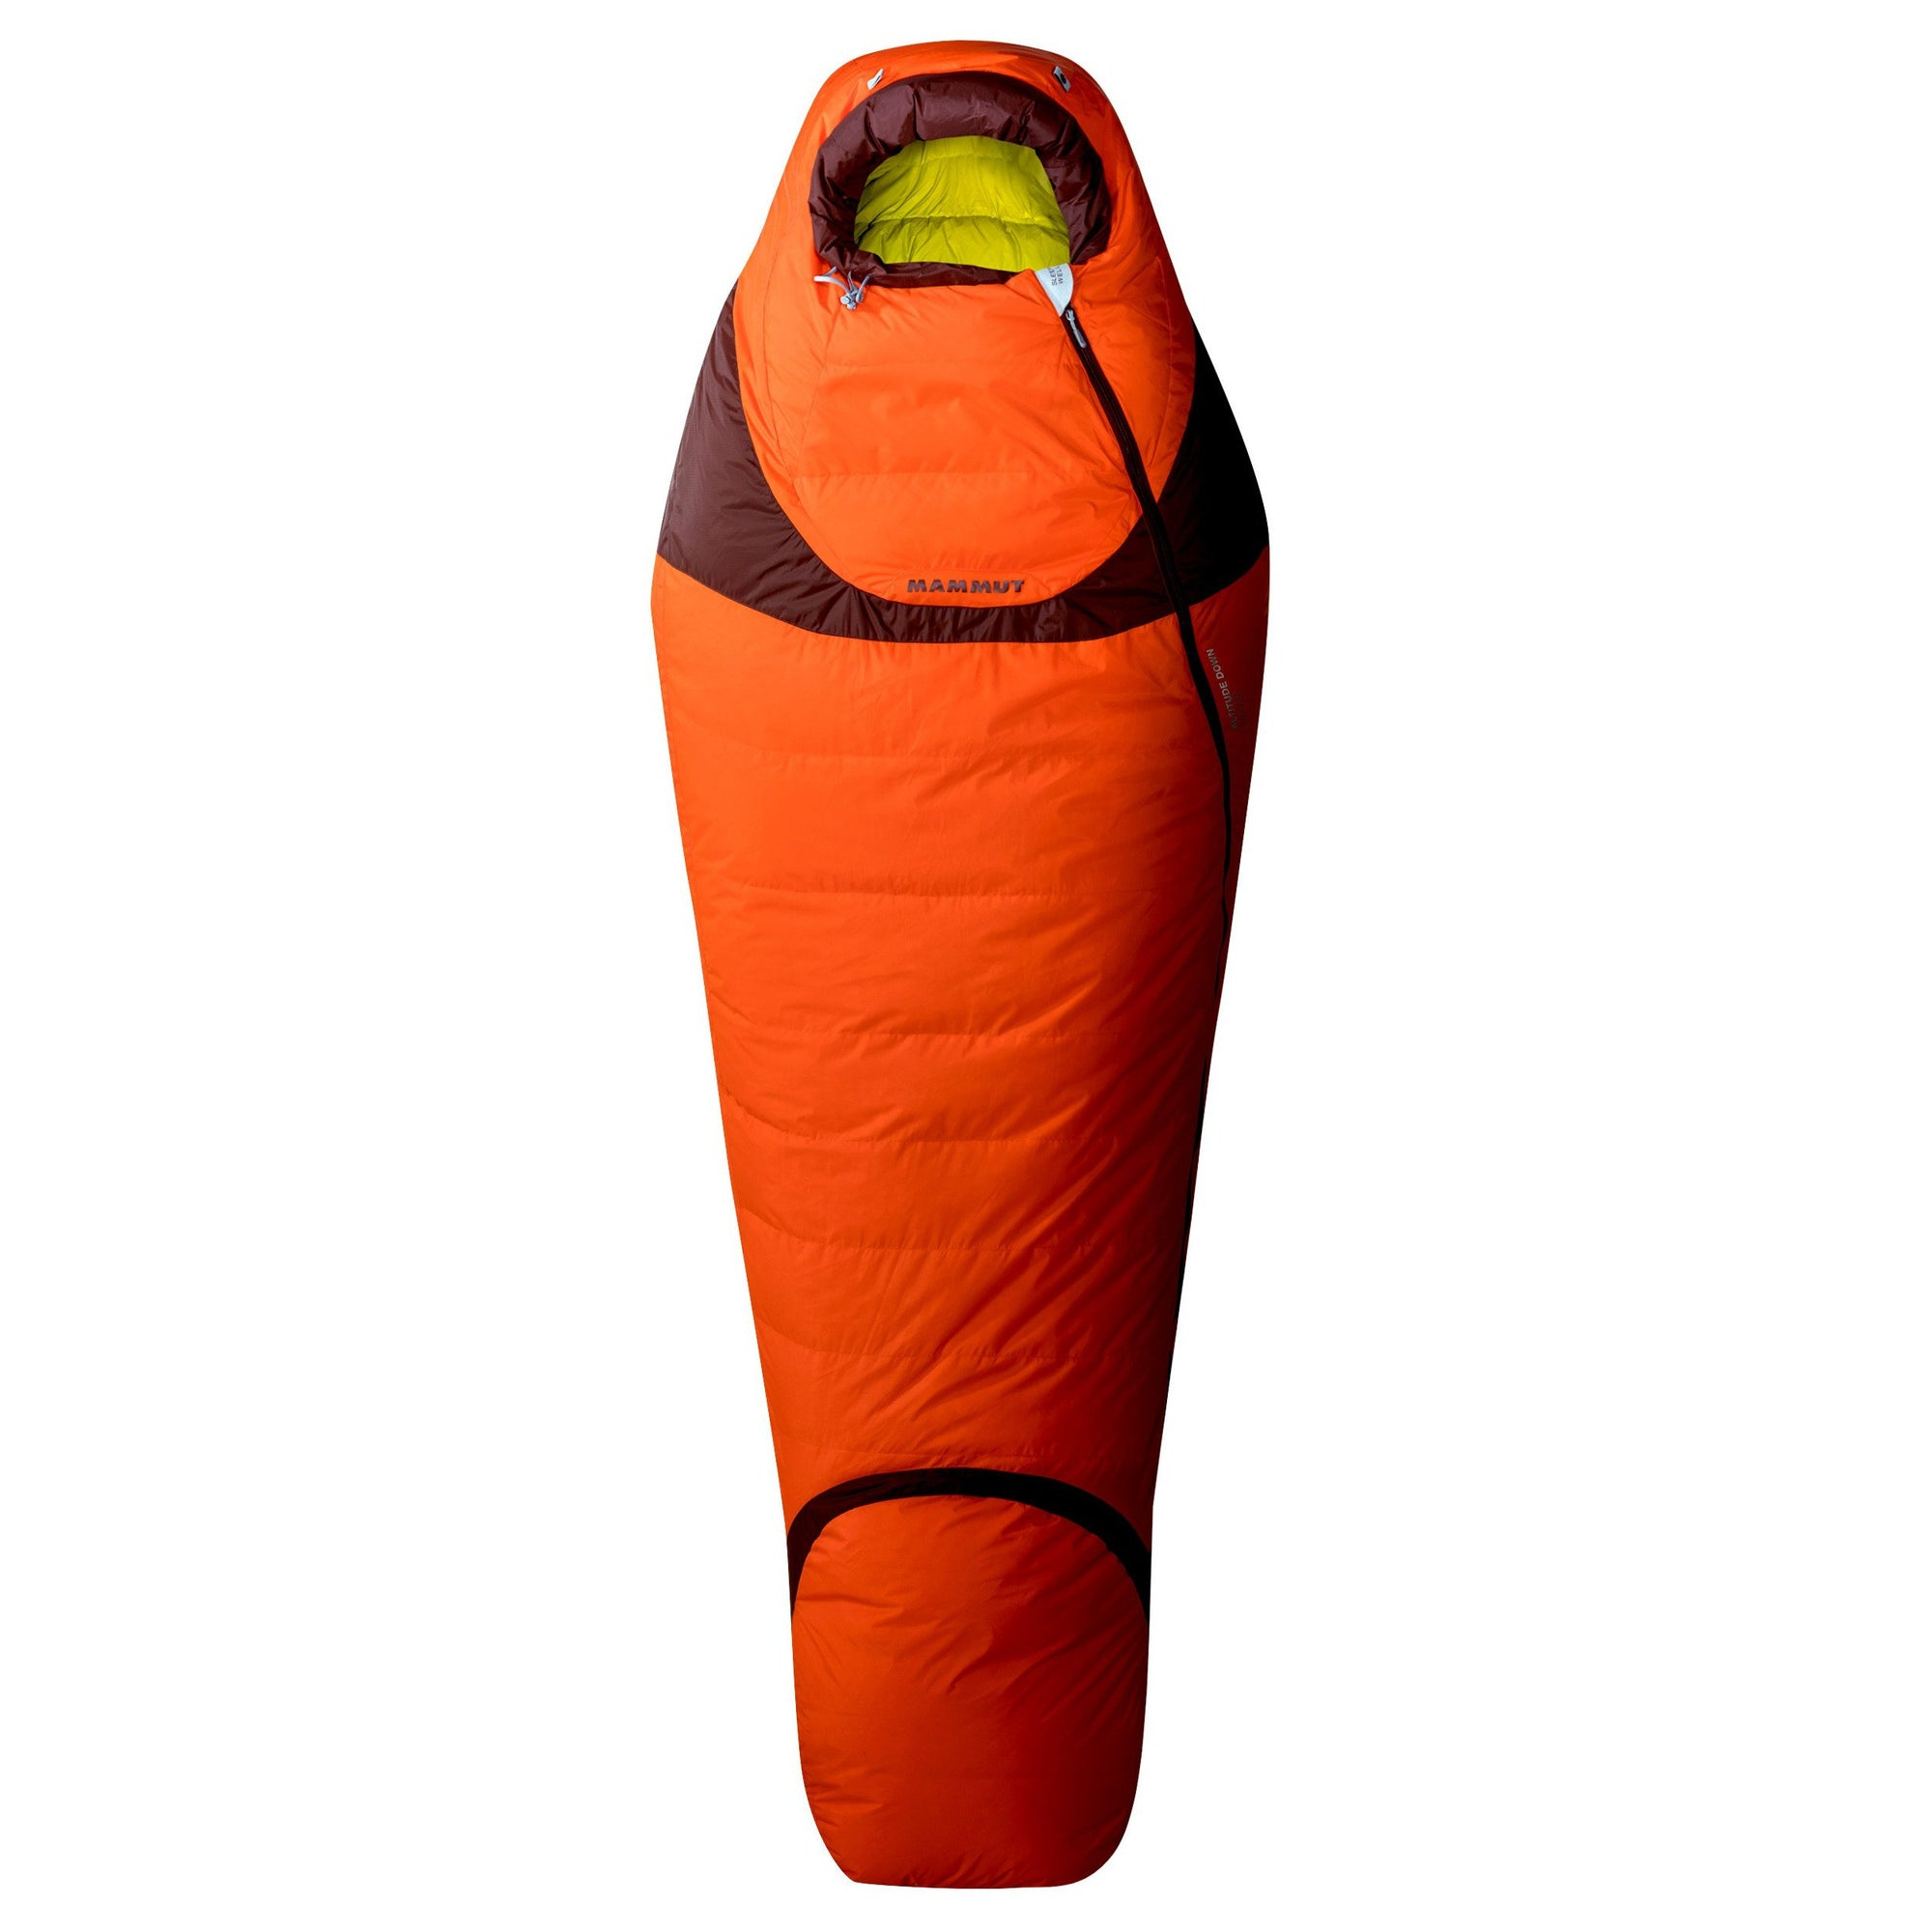 Mammut Altitude Down Winter, shown laid flat and fully closed in orange colour